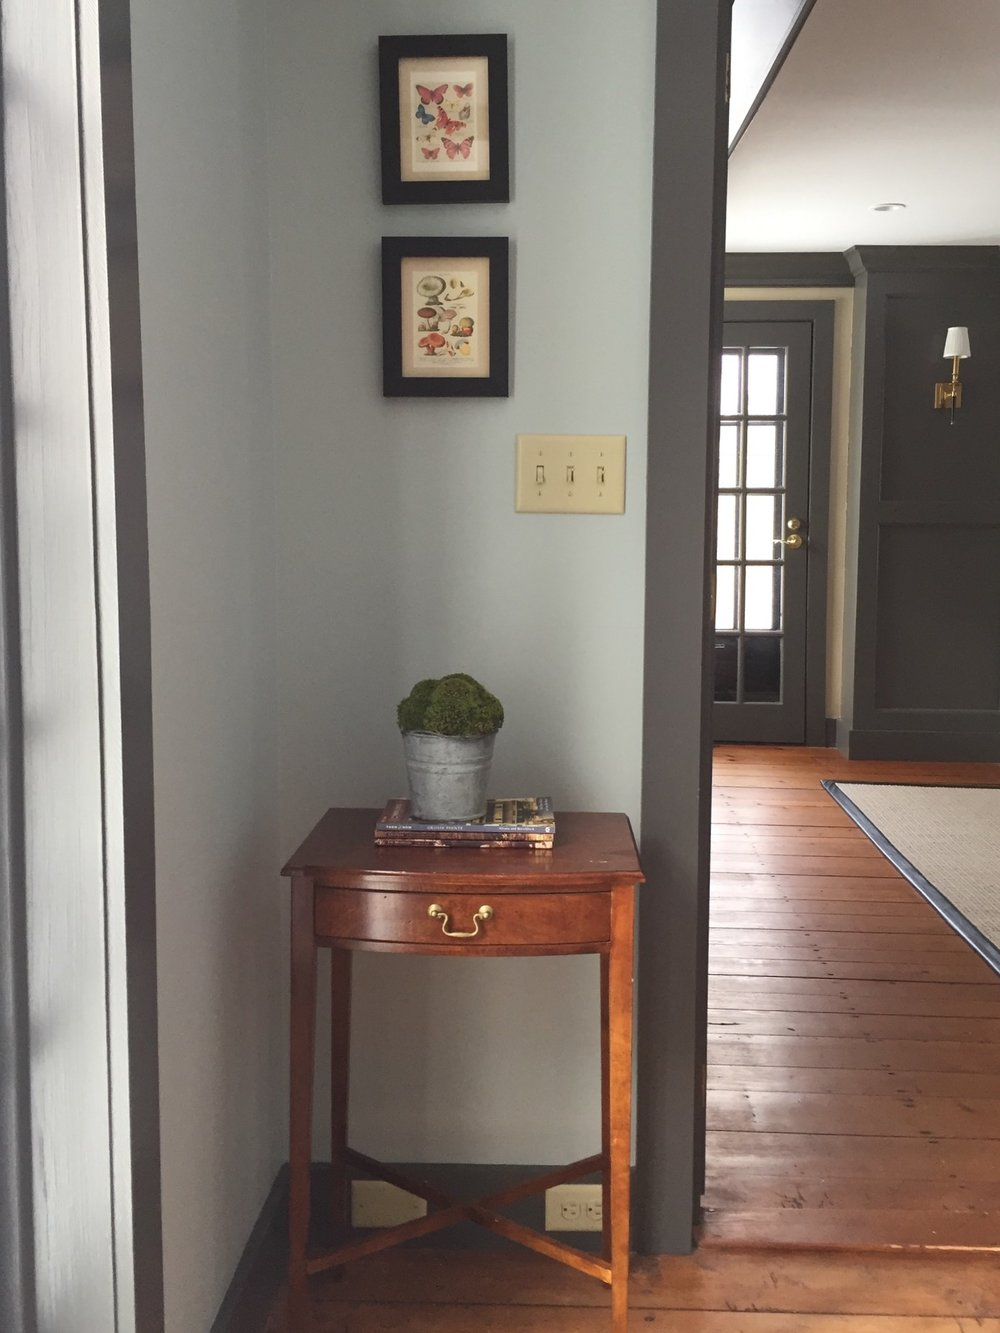 There wasn't much space here, but we could fit this antique side table next to the door. It's just enough space to drop the mail or your keys. The trim color (Benjamin Moore's Kendall Charcoal) is a nice contrast to the walls and helps to define this cozy space.